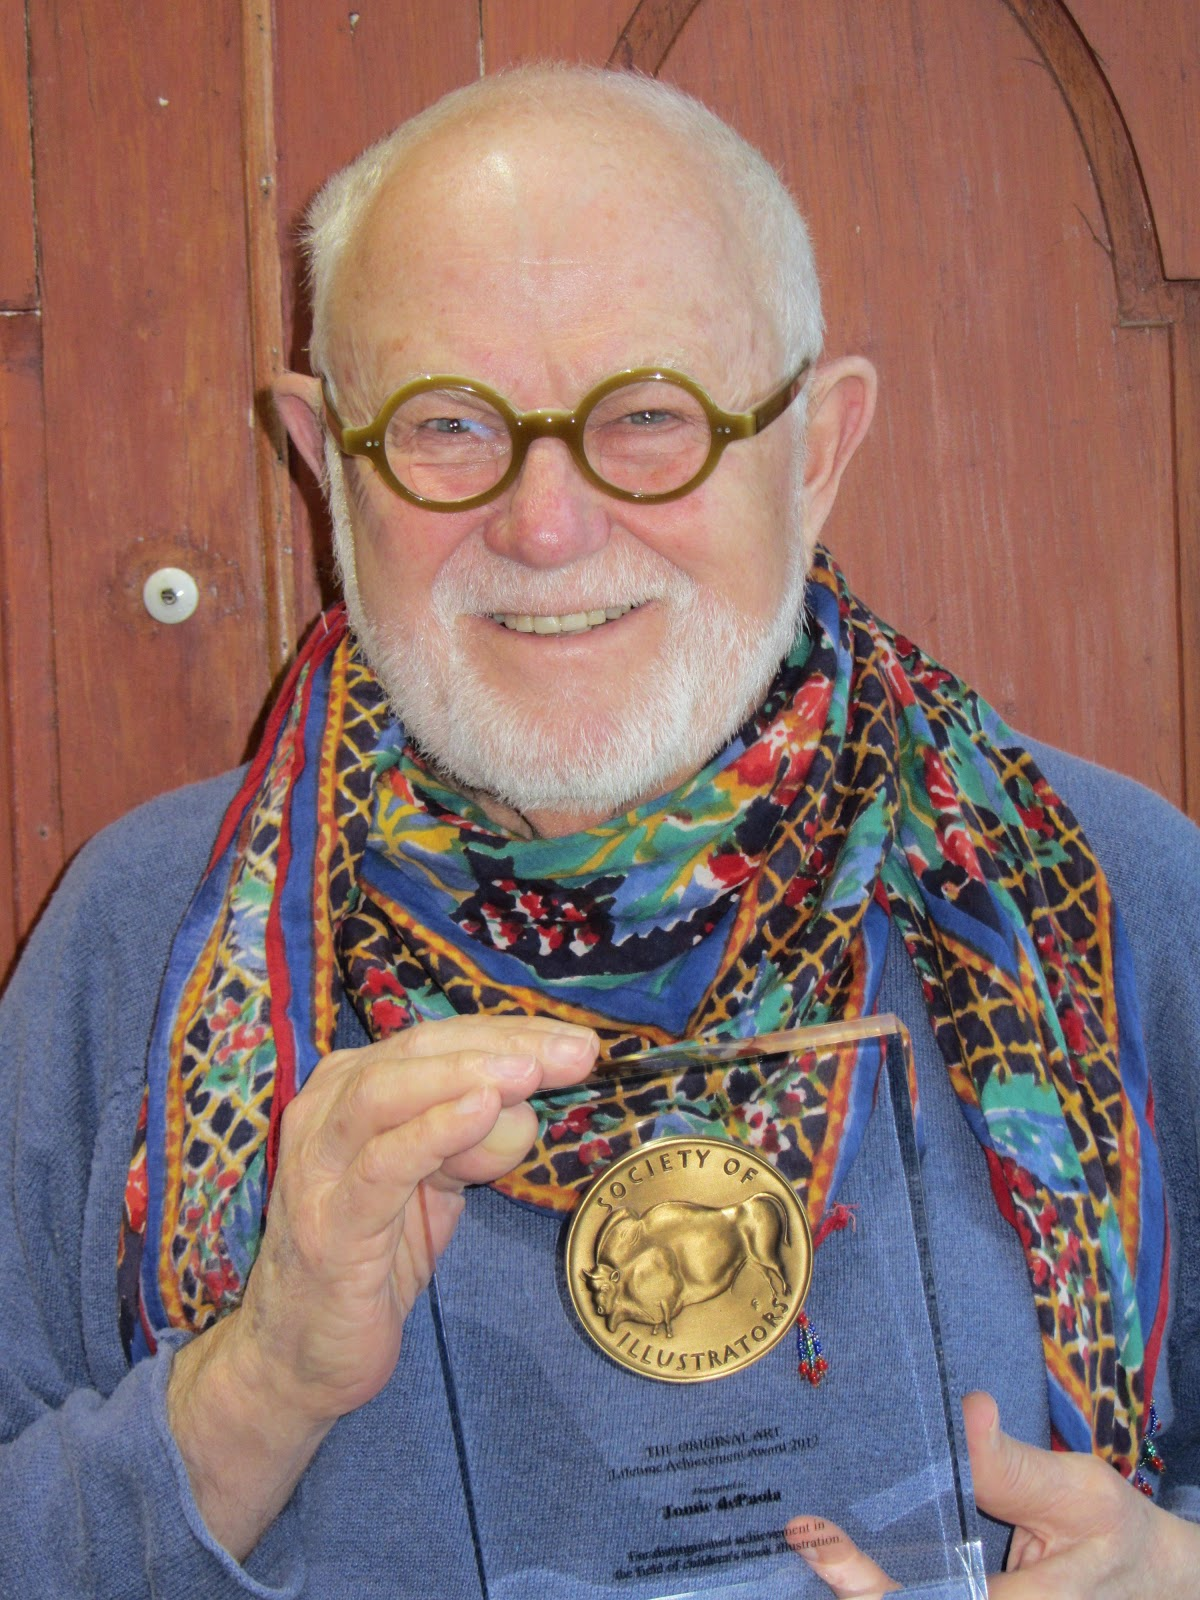 The Official Tomie Depaola Blog A Man With His Medal And